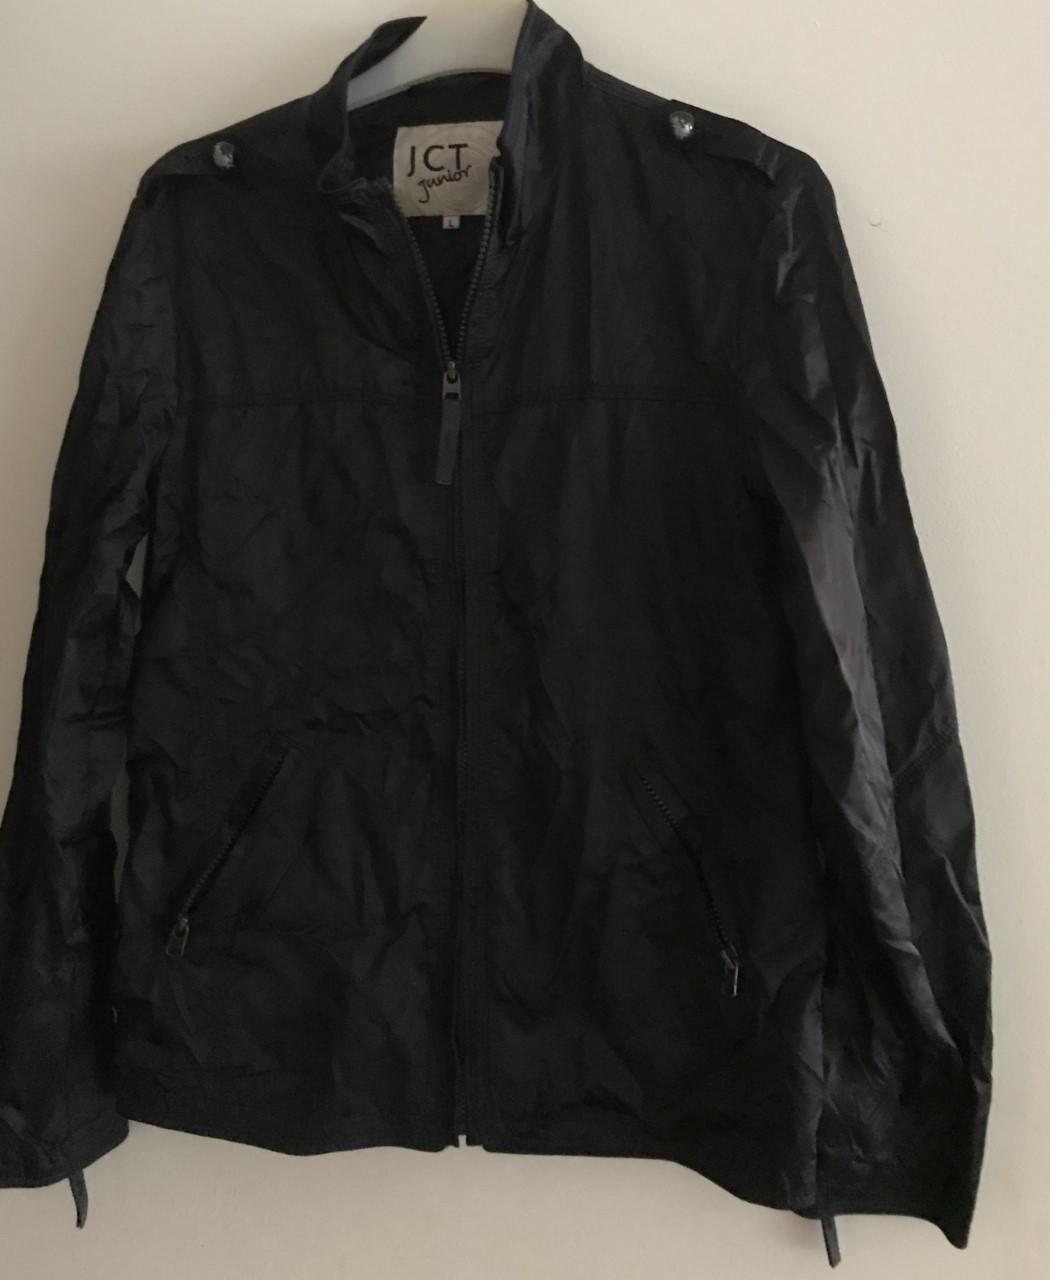 Freecycle clothes - job lot